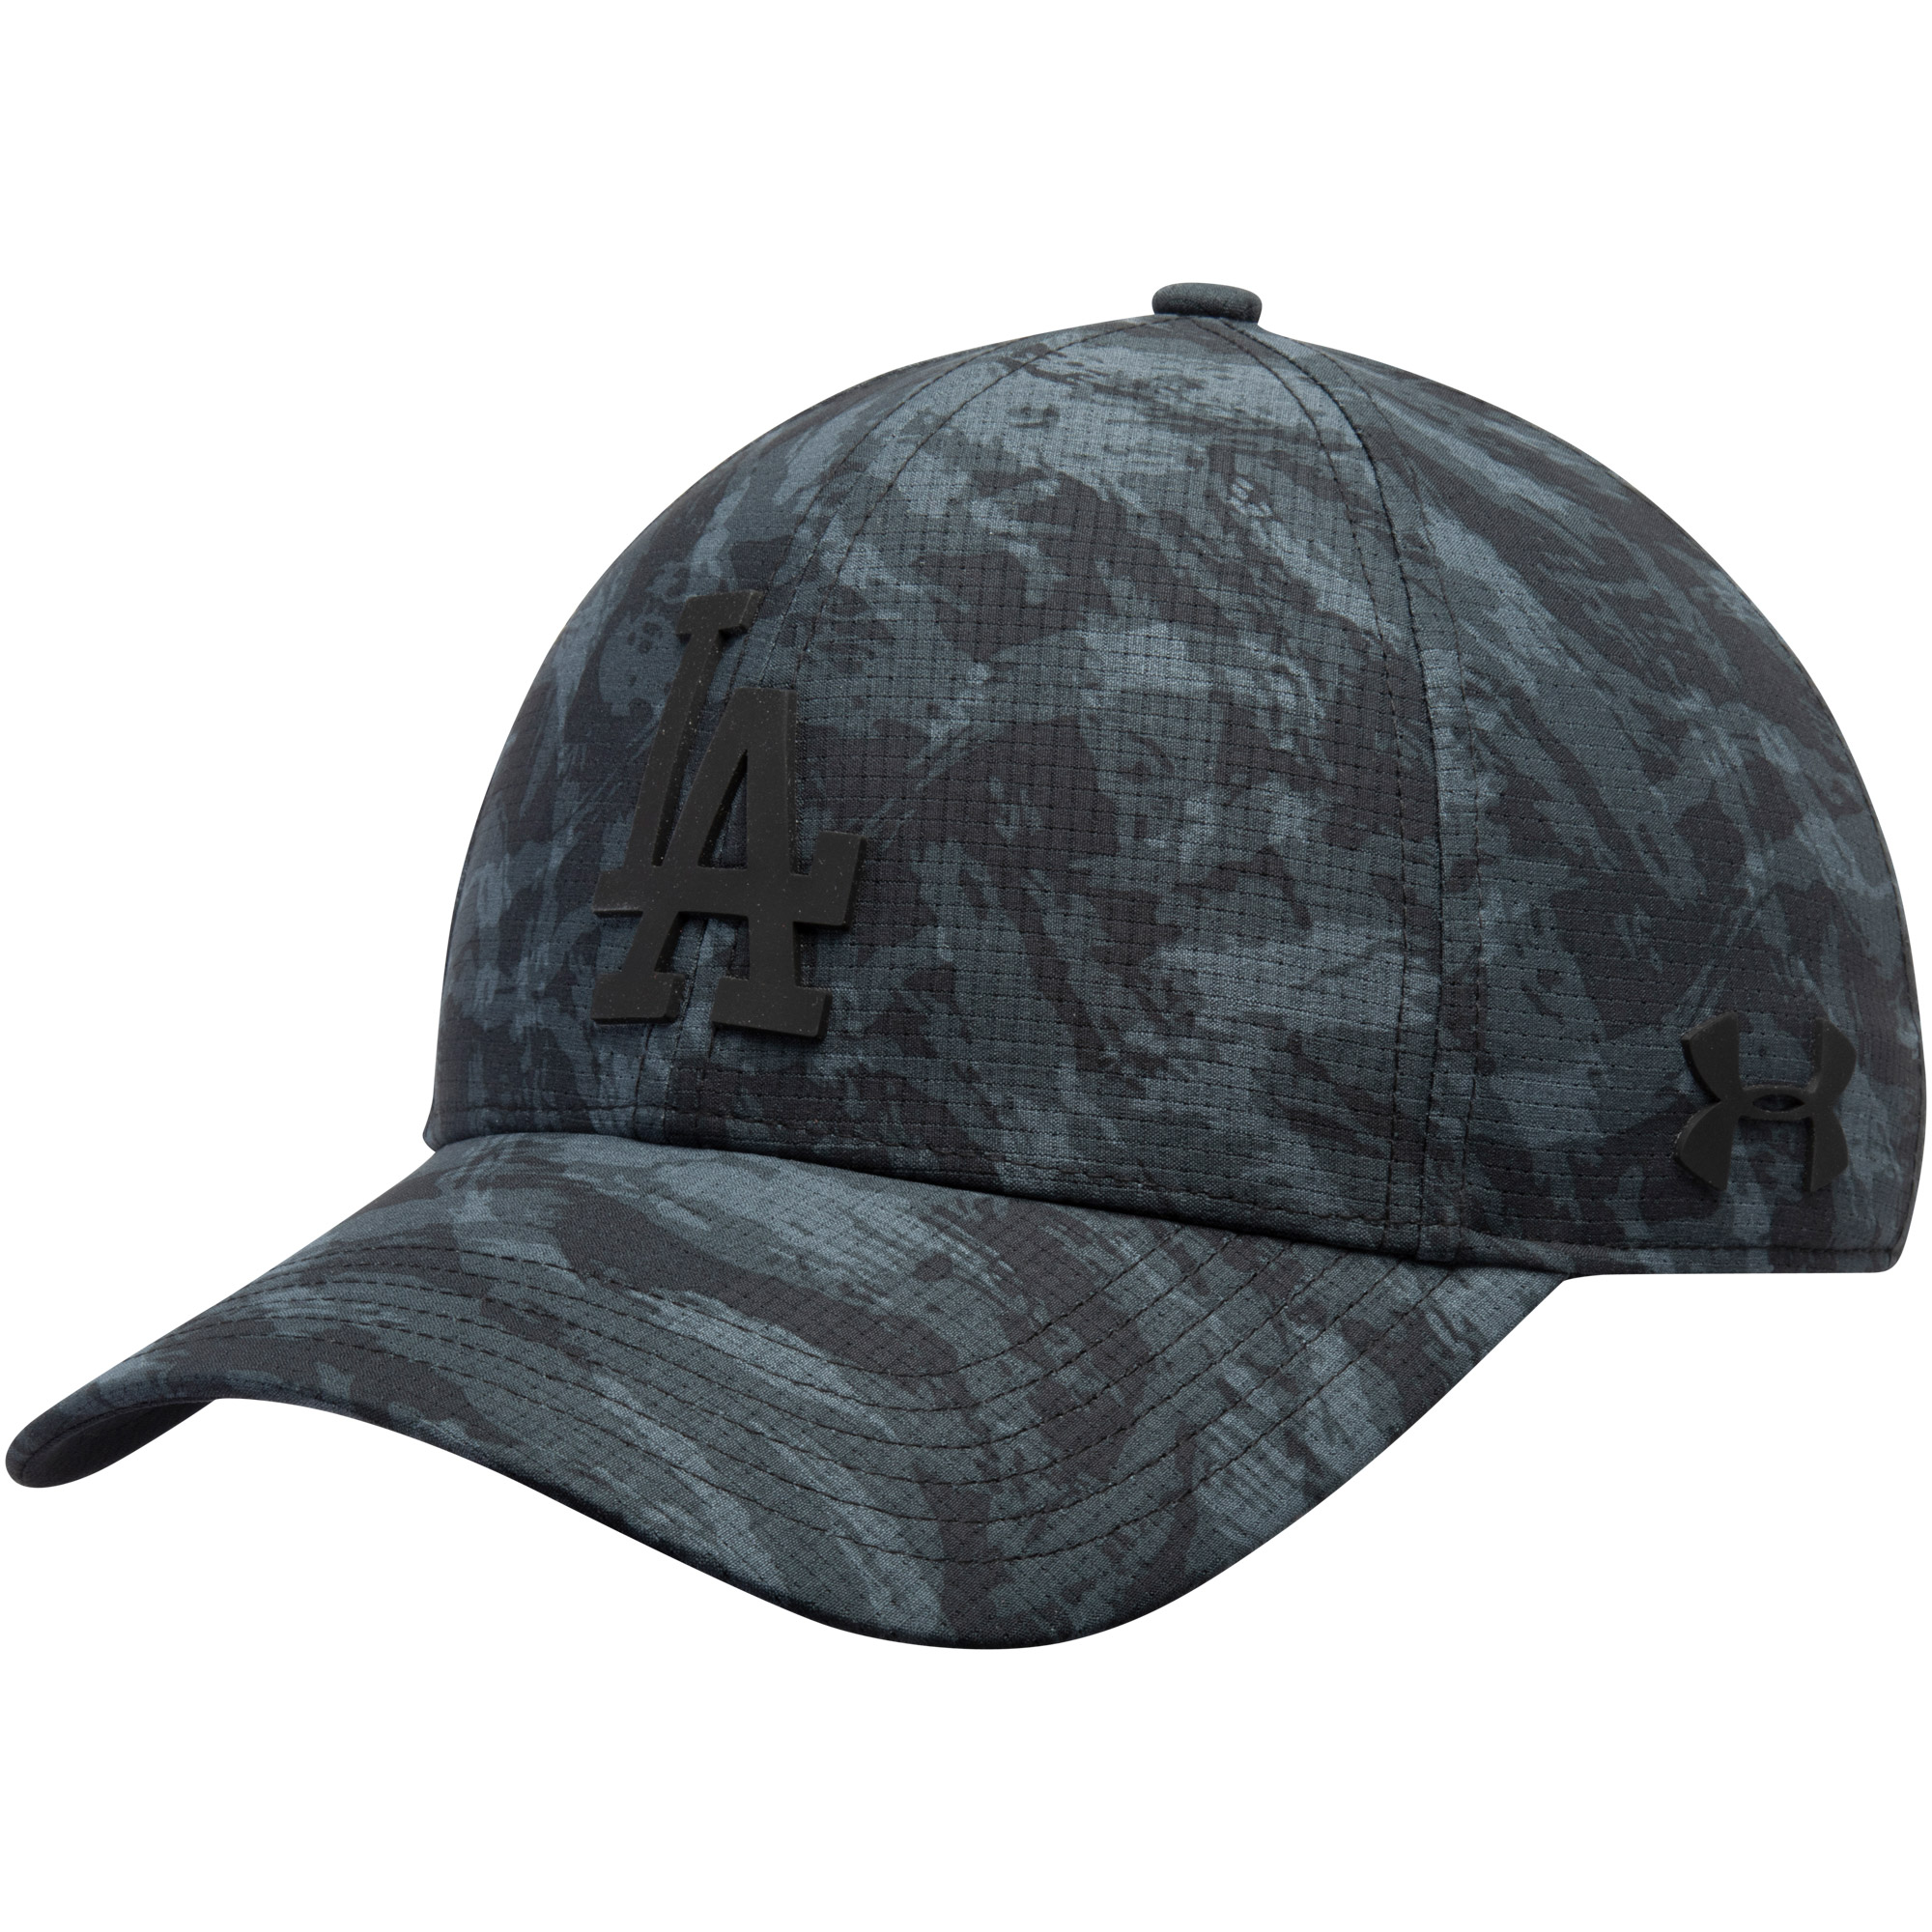 Los Angeles Dodgers Under Armour Tonal Camo Performance Adjustable Hat - Charcoal - OSFA